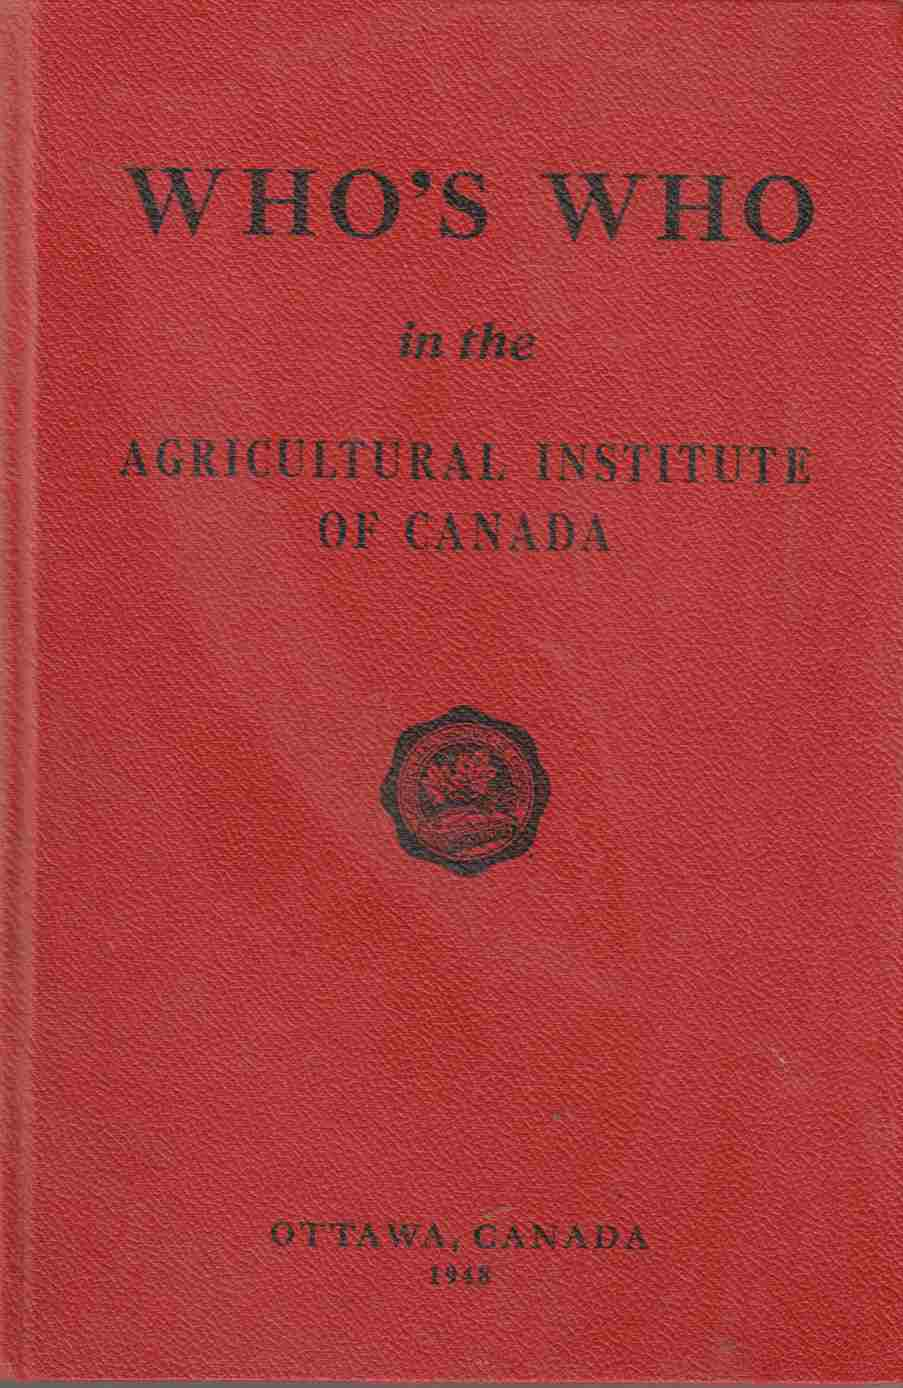 Image for Who's Who in the Agricultural Institute of Canada